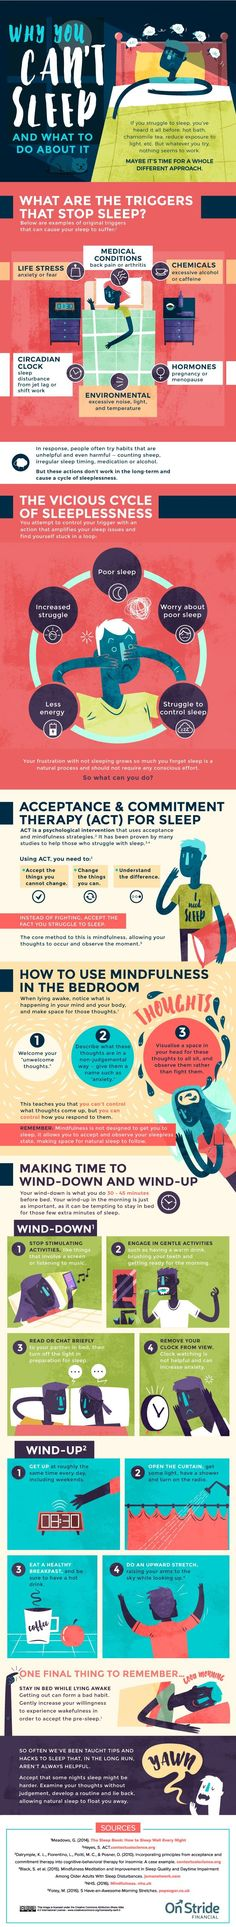 Can't sleep? Here are 11 simple tips in this awesome infographic (Source: Onstride) to help you set yourself up for restful sleep. PLUS click through for my #1 most effective strategy for getting good sleep (dealing with a big root cause behind sleep prob